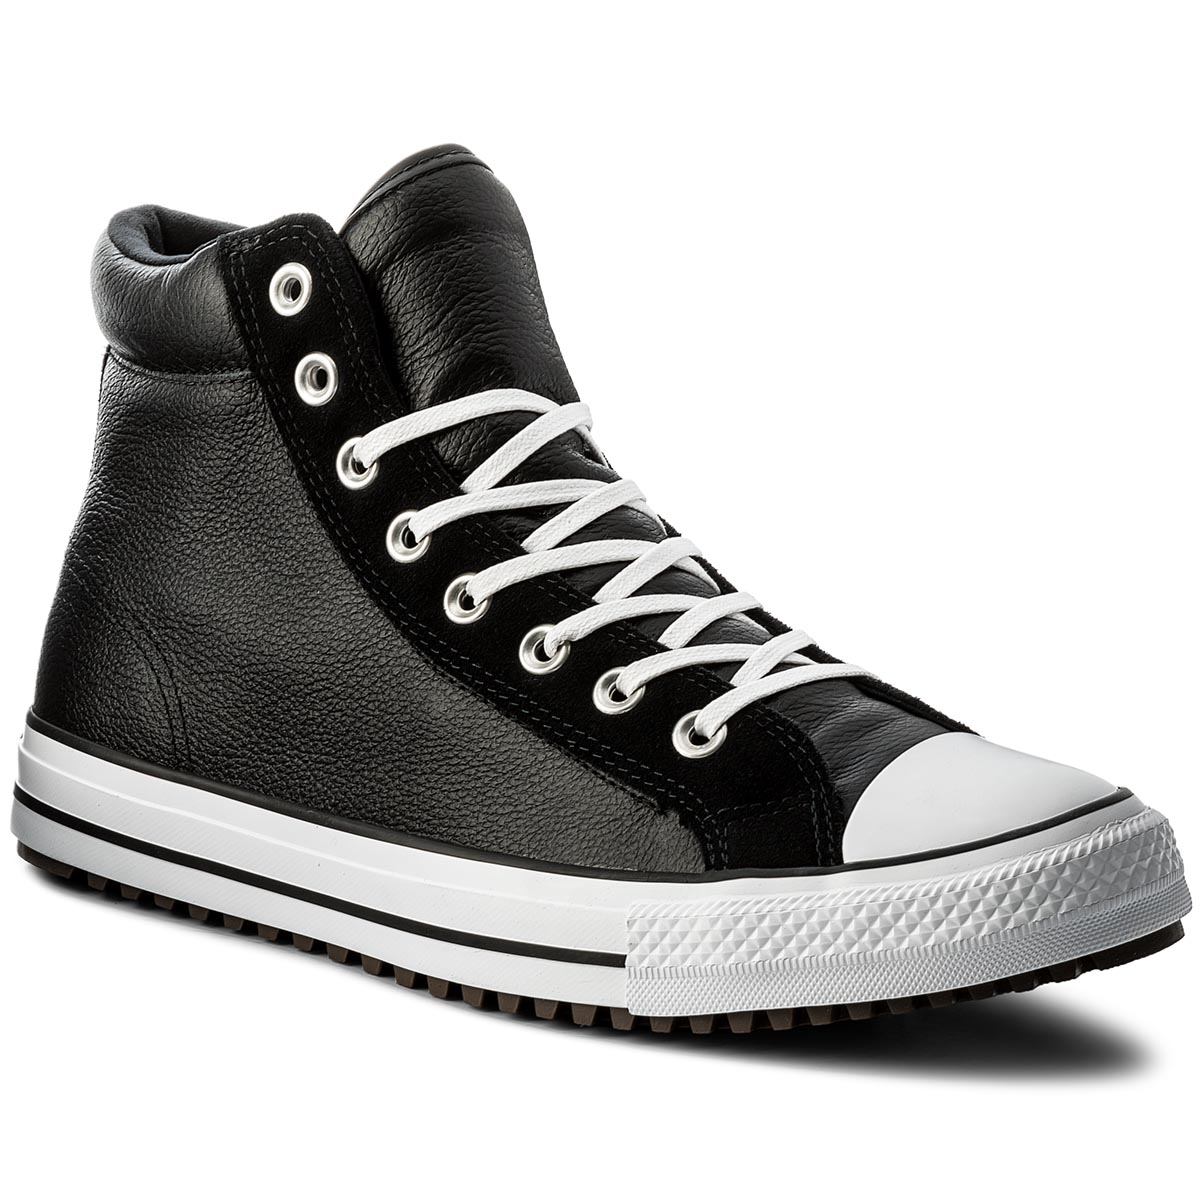 Teniși CONVERSE - Ctas Boot Pc Hi 157496C Black/Black/White